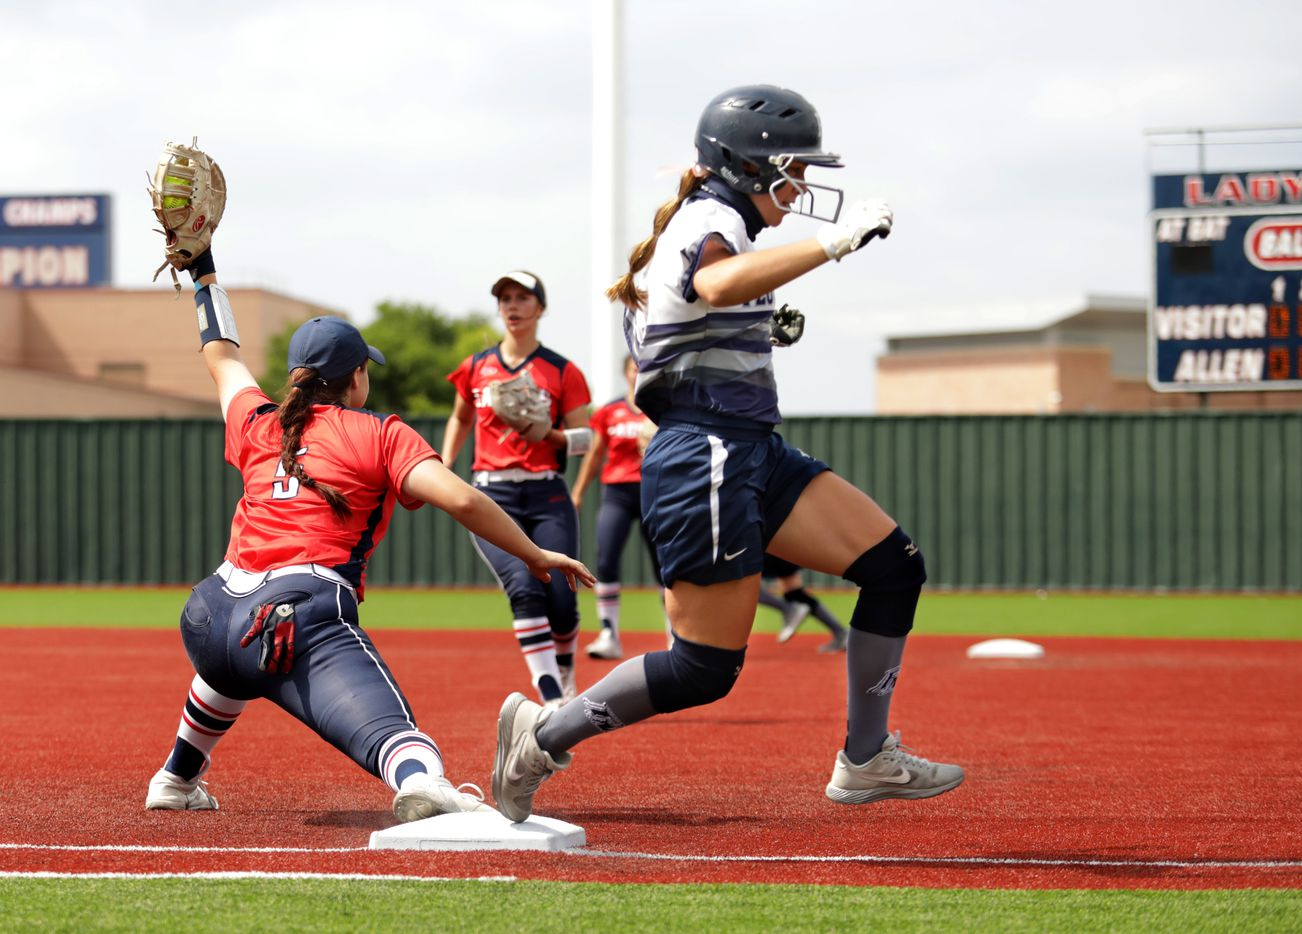 Allen High School player #5, Brooklyn Purtell, takes out Flower Mound High School player #10, Jori Whinery, during a softball game at Allen High School in Allen, TX, on May 15, 2021. (Jason Janik/Special Contributor)